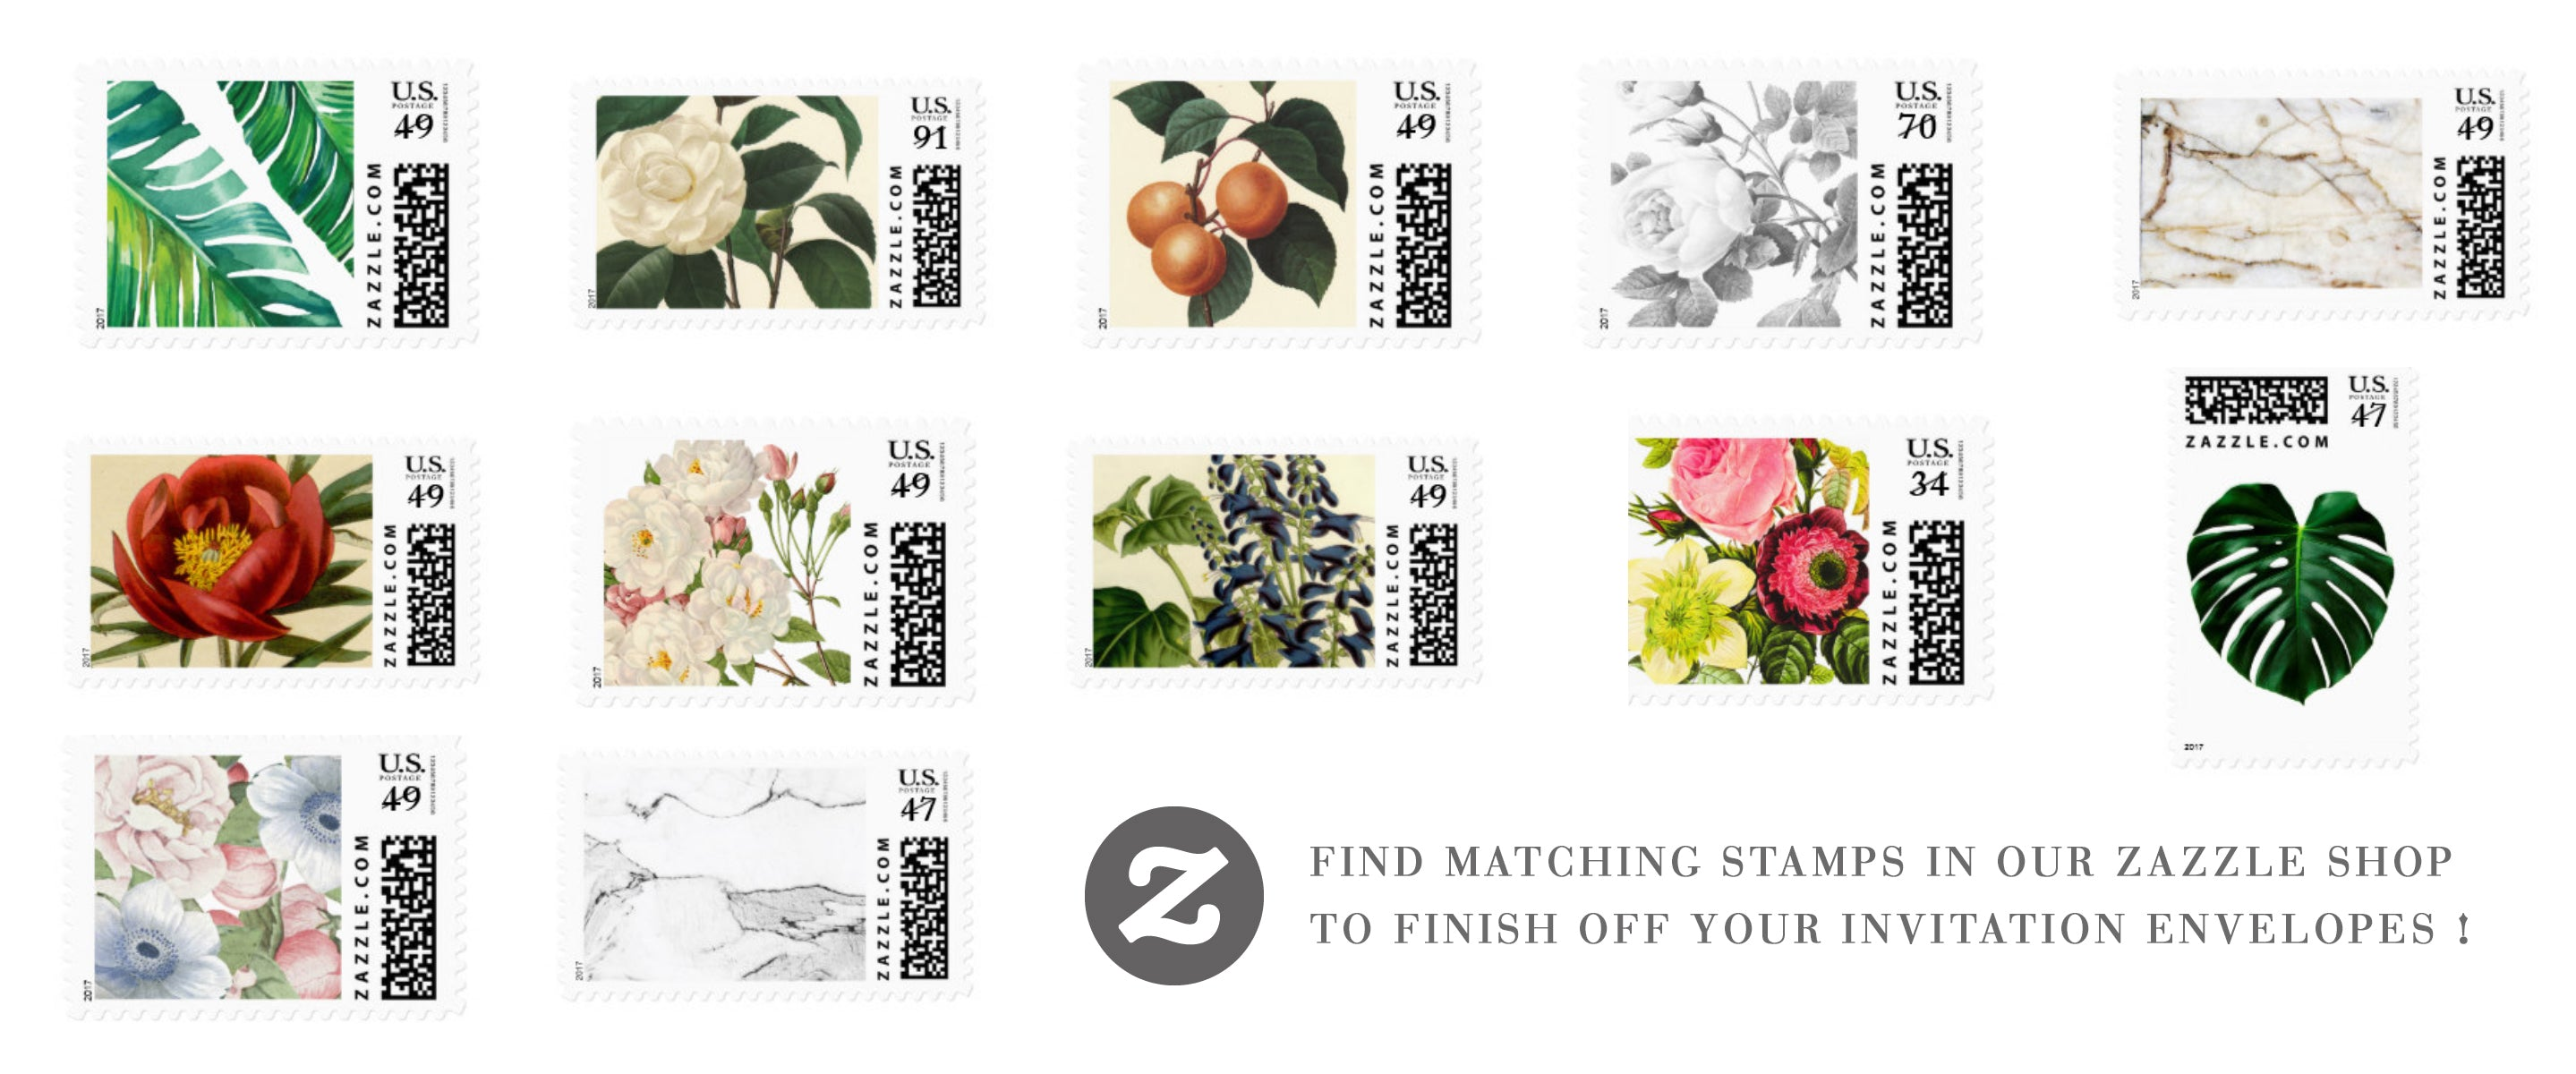 Usps Wedding Stamps.Are Zazzle Stamps Still Available